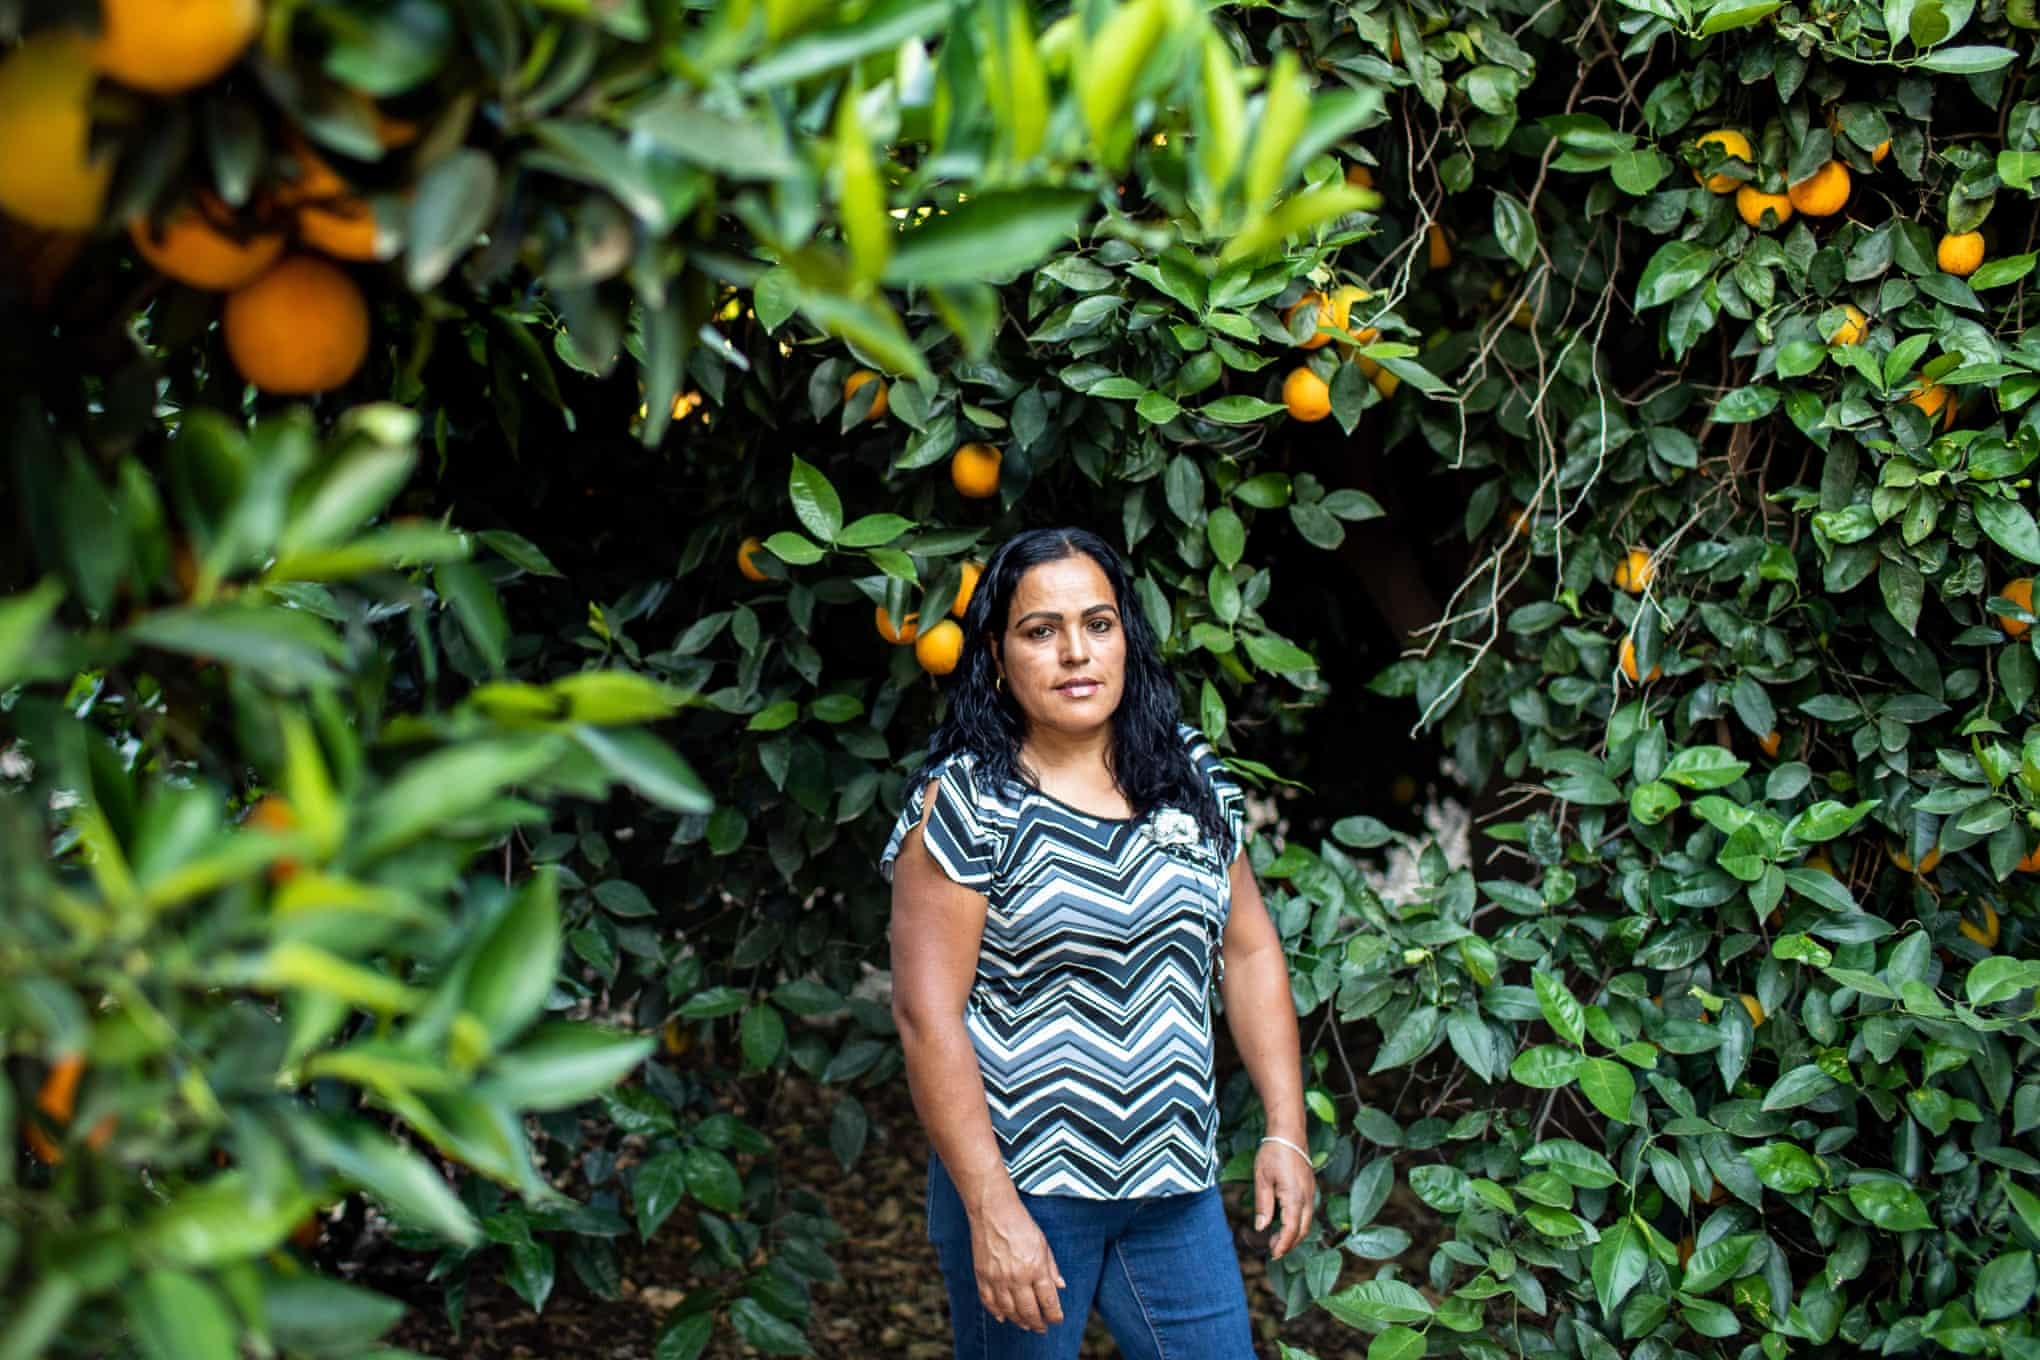 'Children are being poisoned': California moms lead the way to pesticide ban